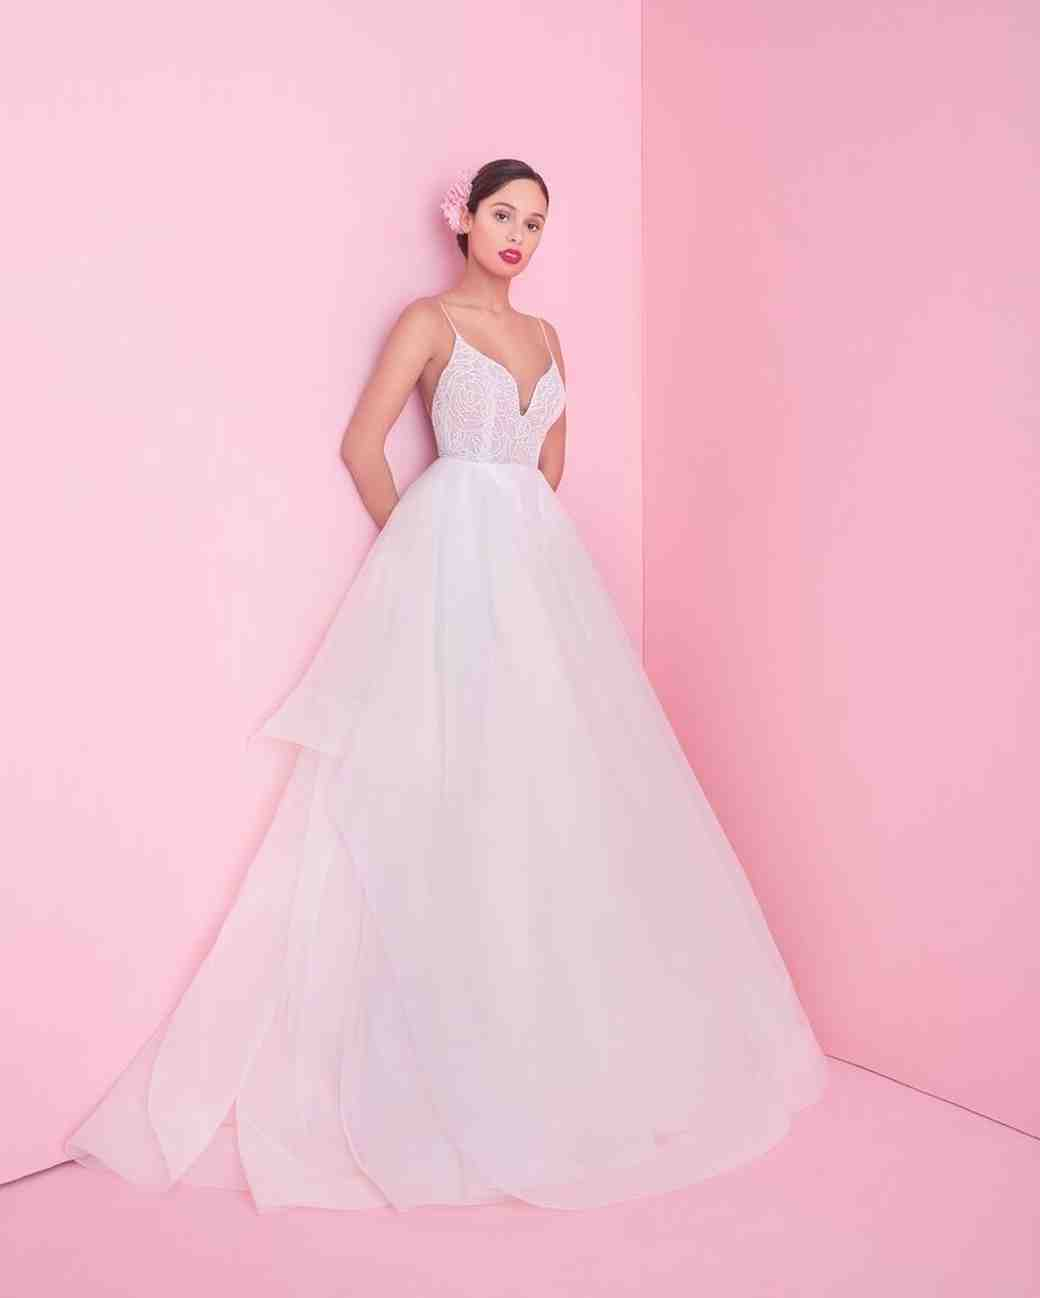 Blush by hayley paige spring 2019 wedding dress collection martha blush by hayley paige spring 2019 wedding dress collection martha stewart weddings junglespirit Choice Image